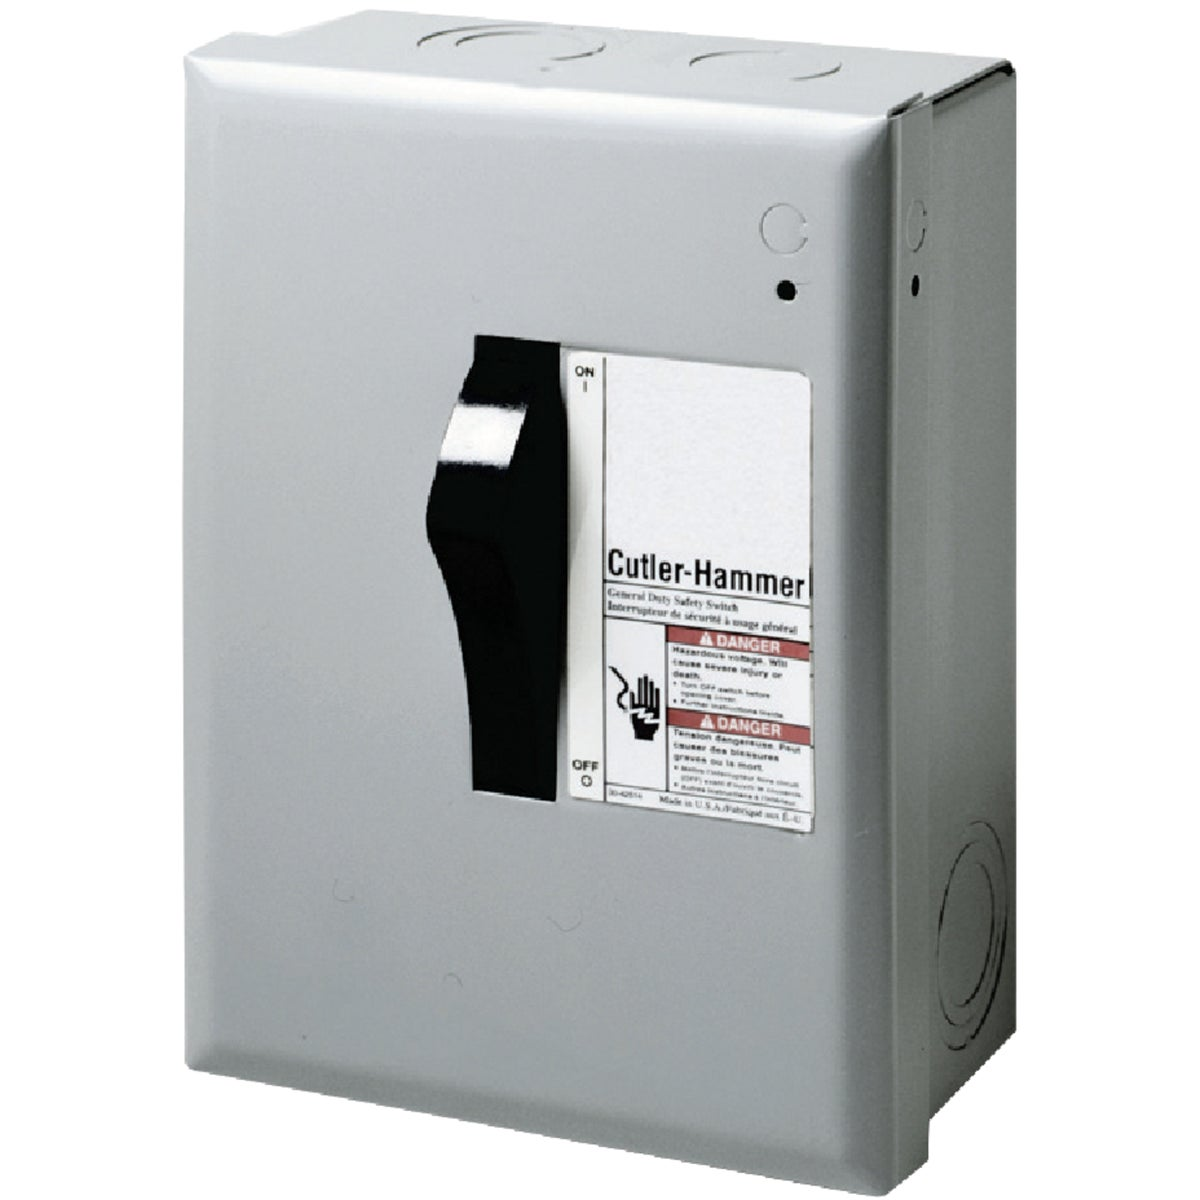 30A SAFETY SWITCH - DP221NGB by Eaton Corporation